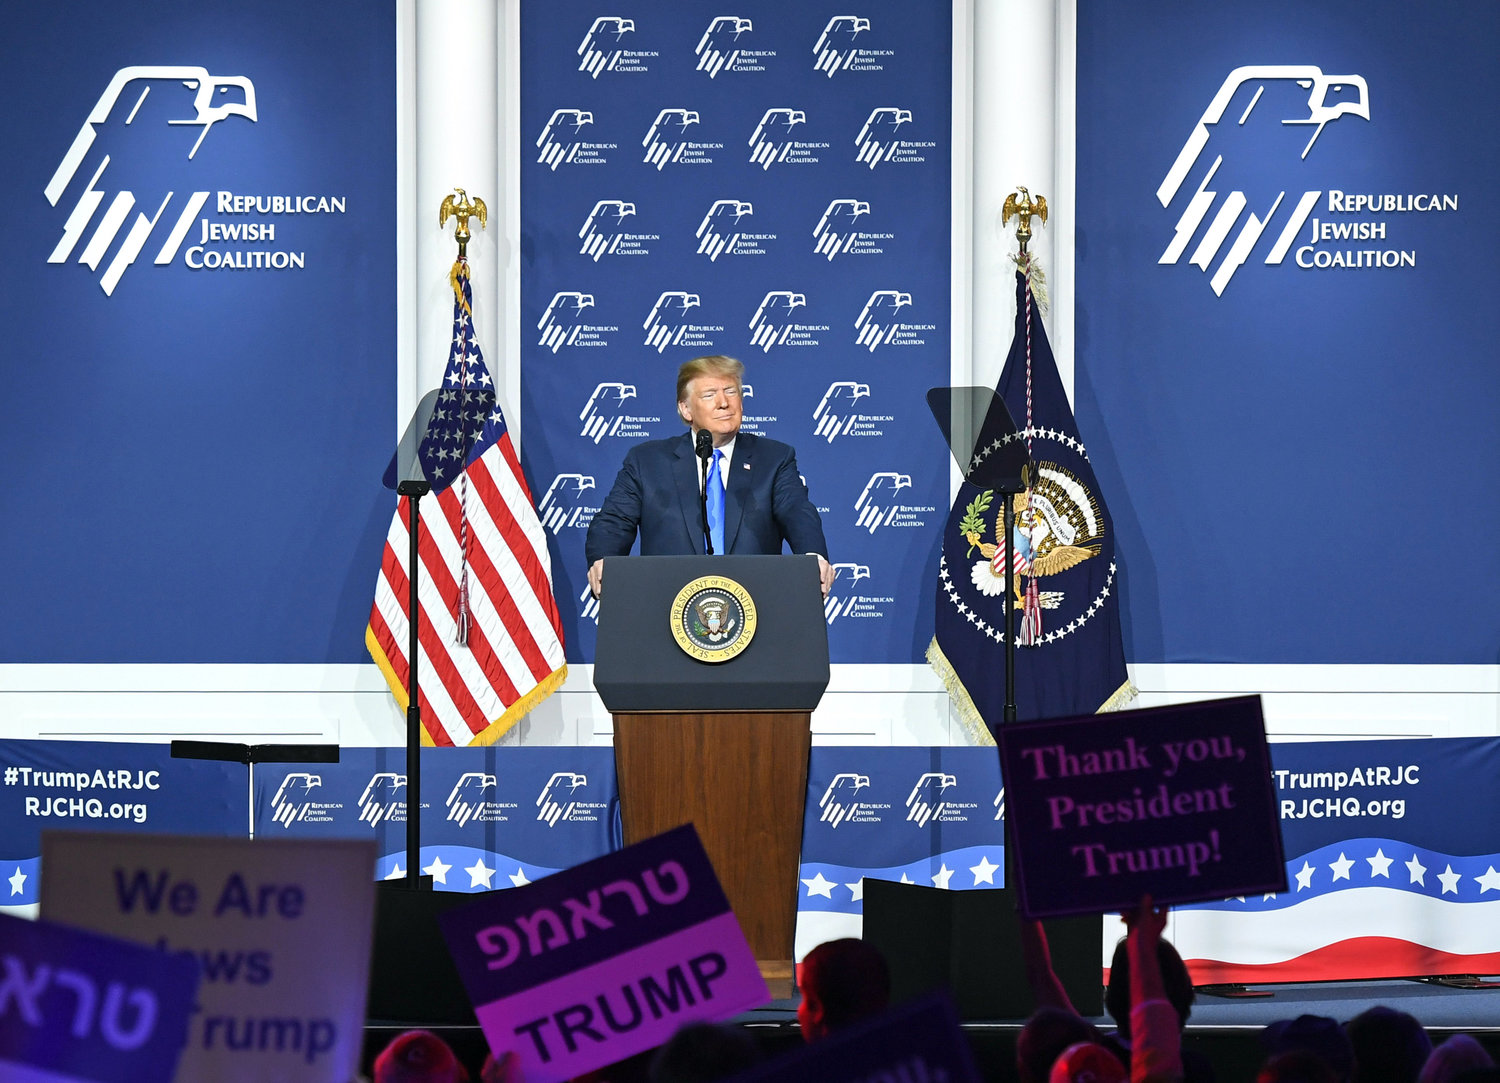 President Donald Trump speaks during the Republican Jewish Coalition's annual leadership meeting at The Venetian Las Vegas on April 6, 2019.